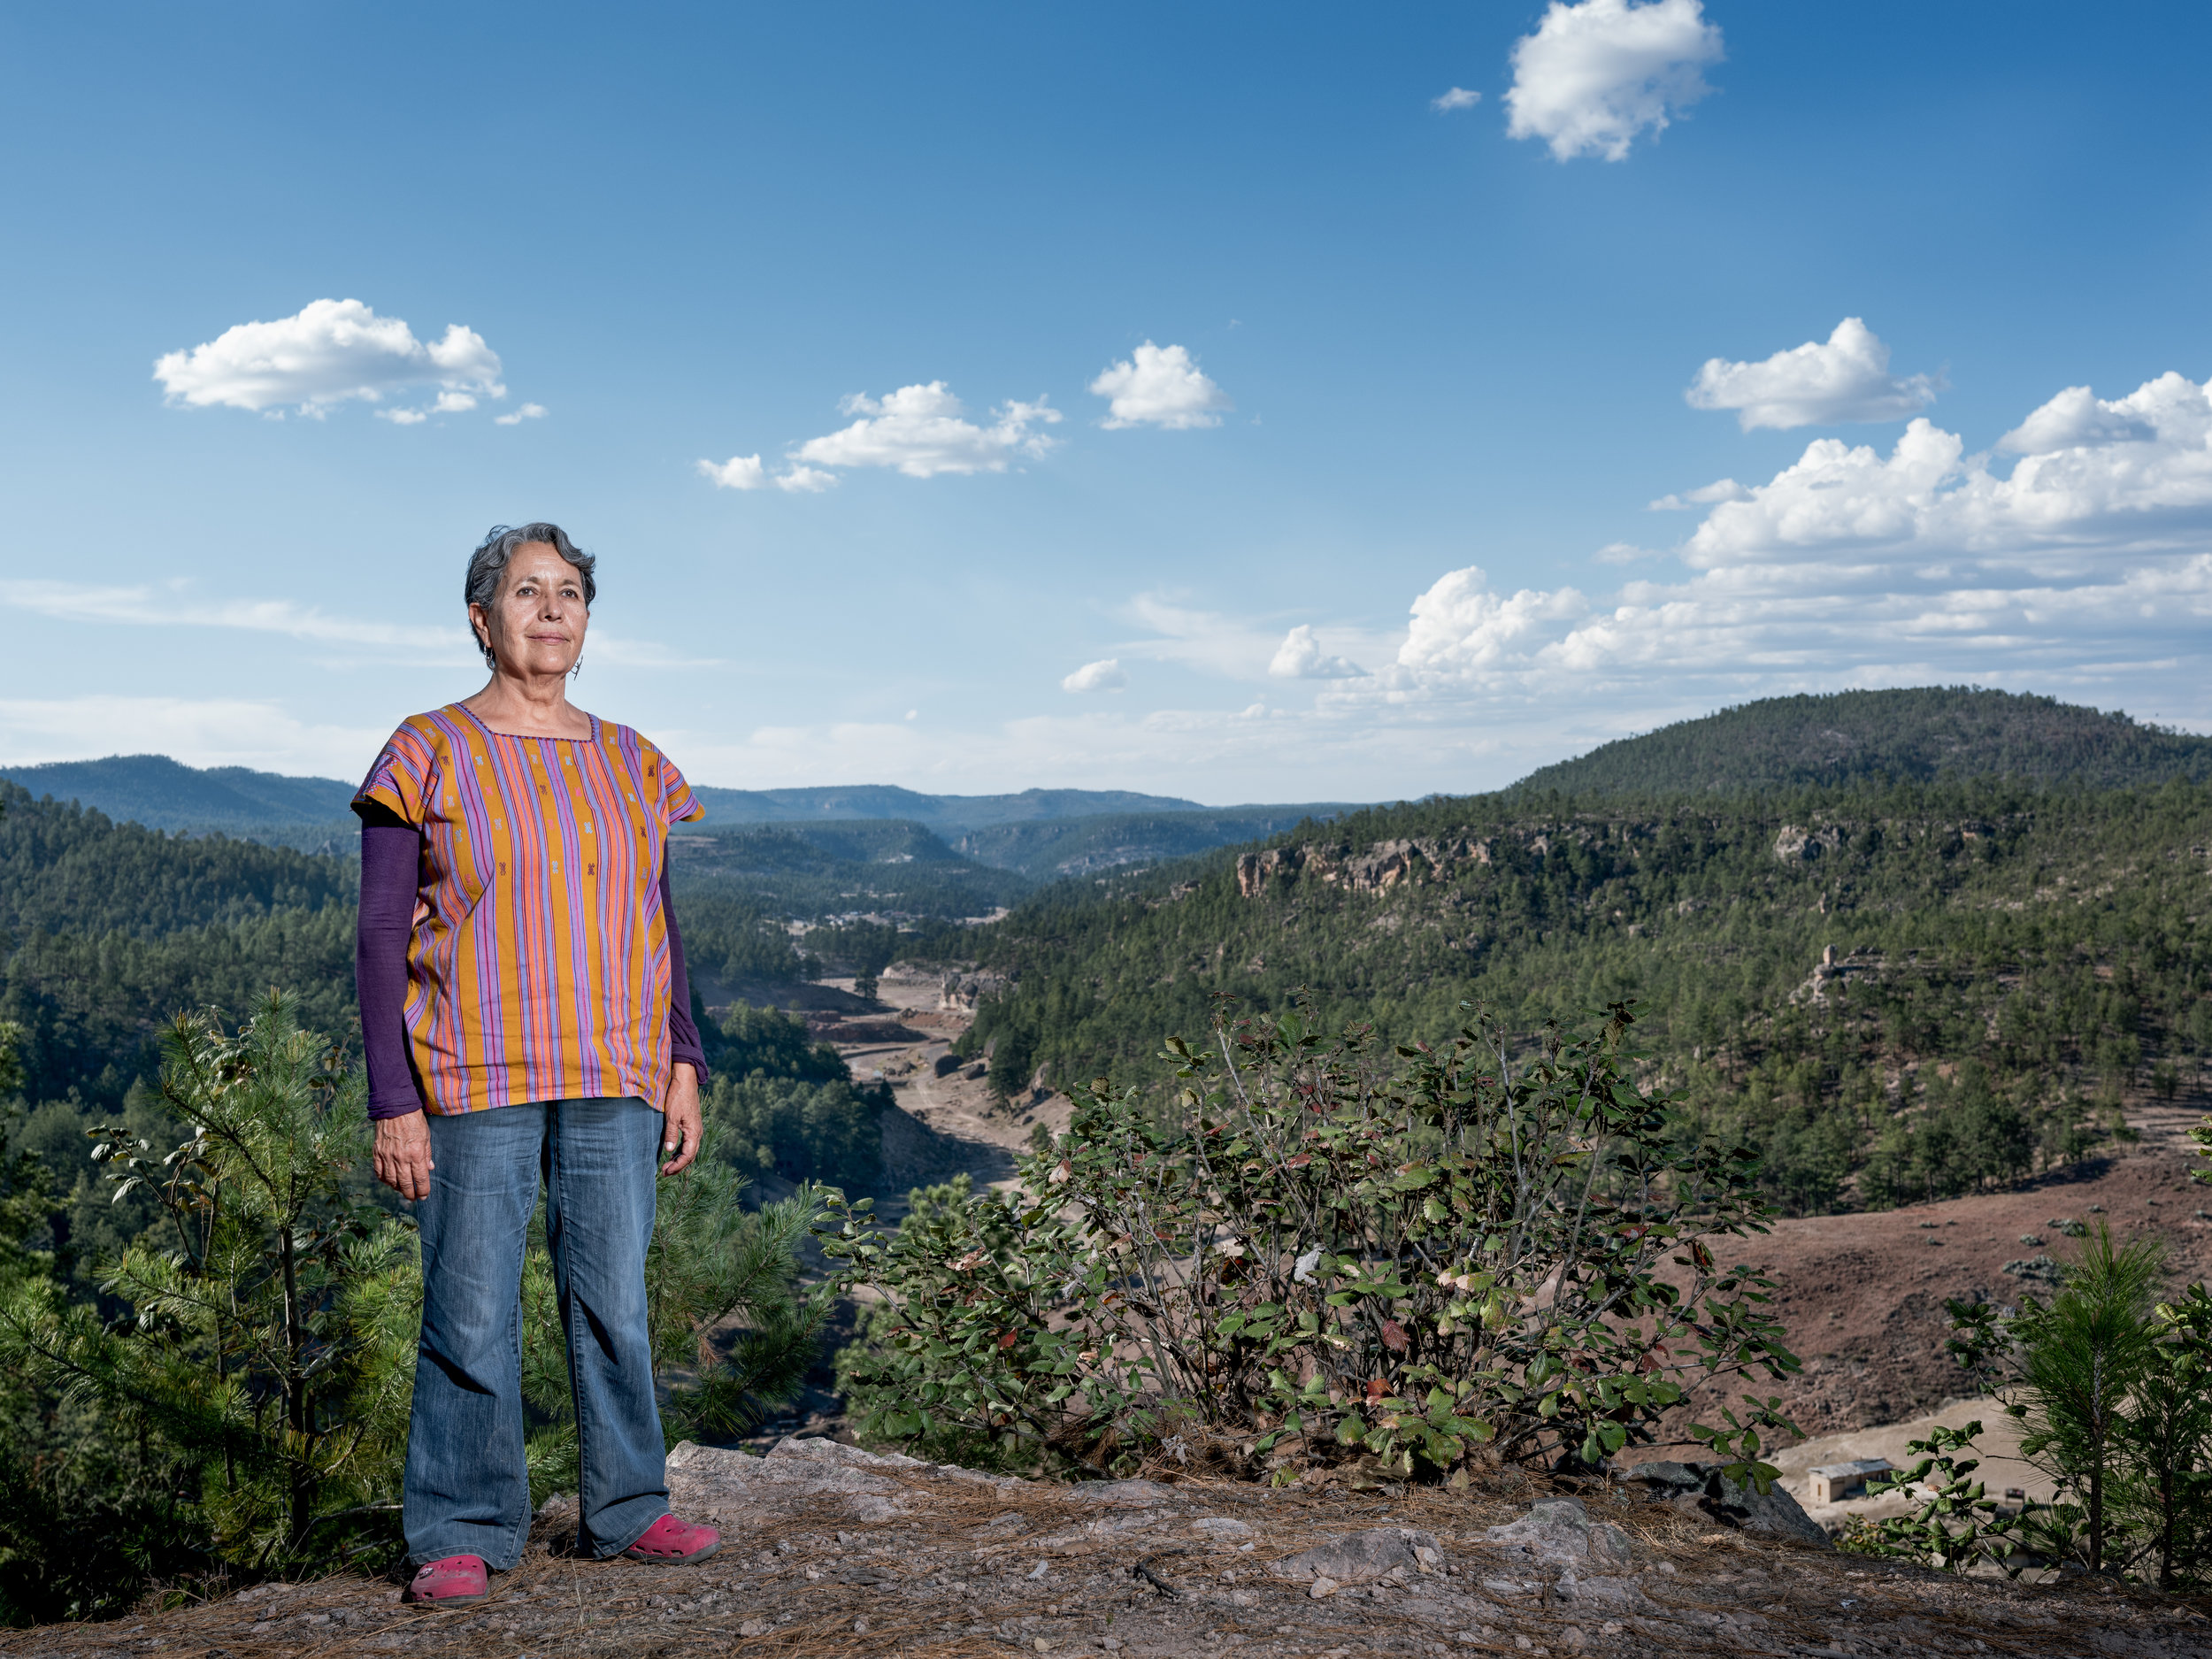 Isela González in front of the pine forests of the Sierra Madre